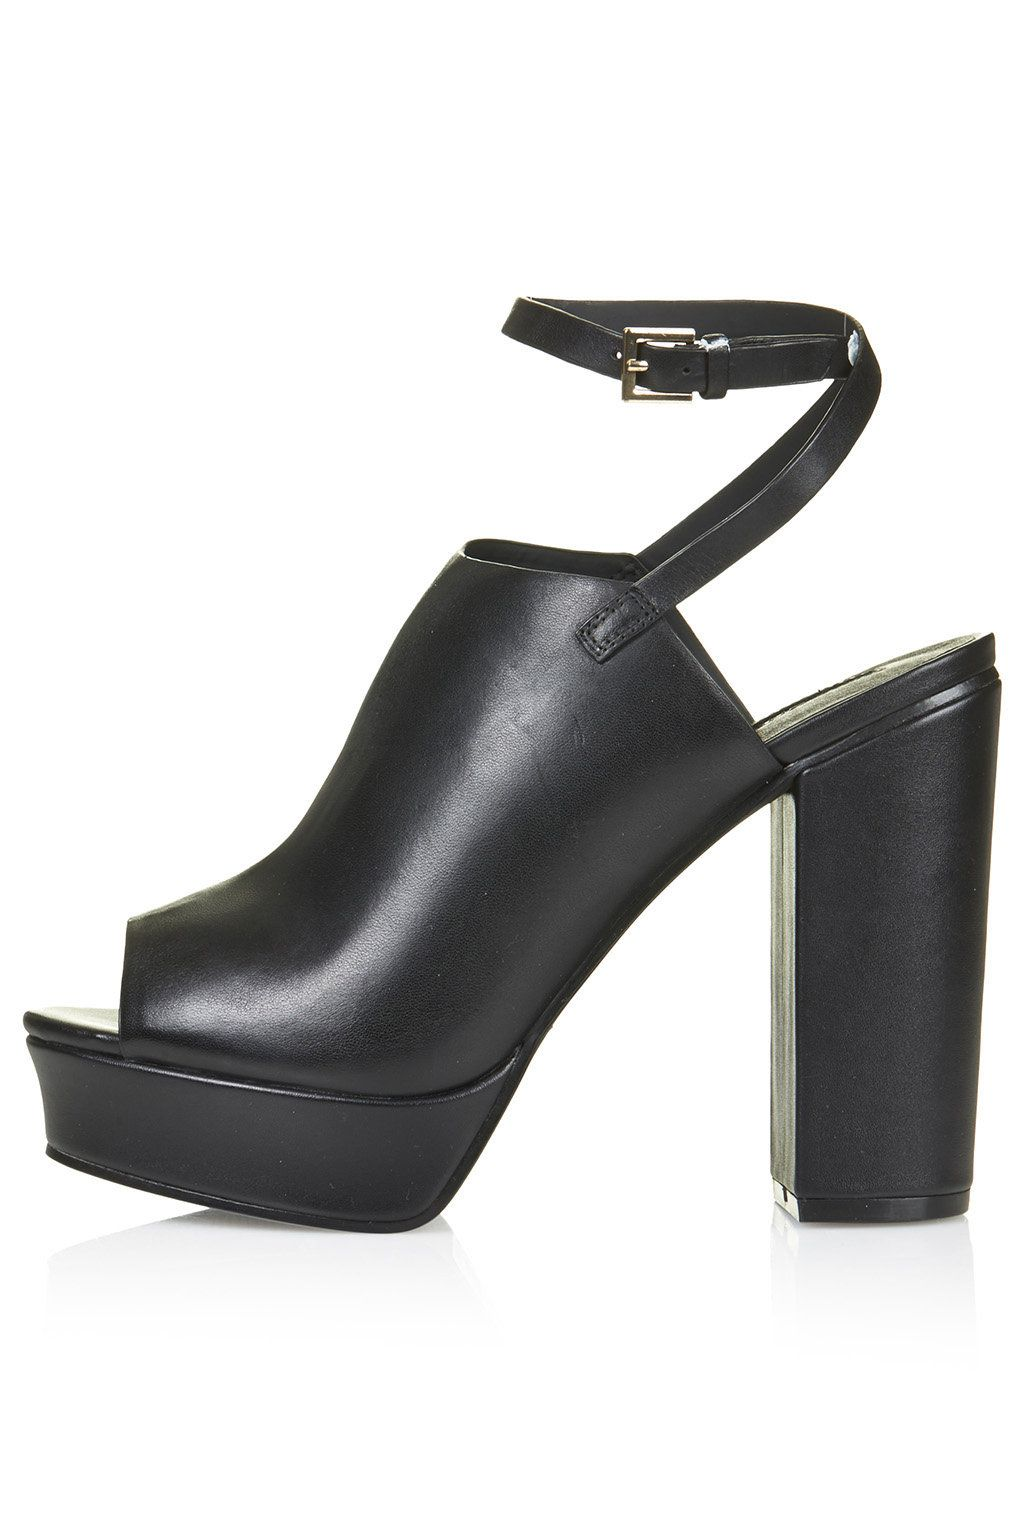 SAGITTARIUS Platform Shoes - View All - Shoes - Topshop Europe Botas 689247fc077